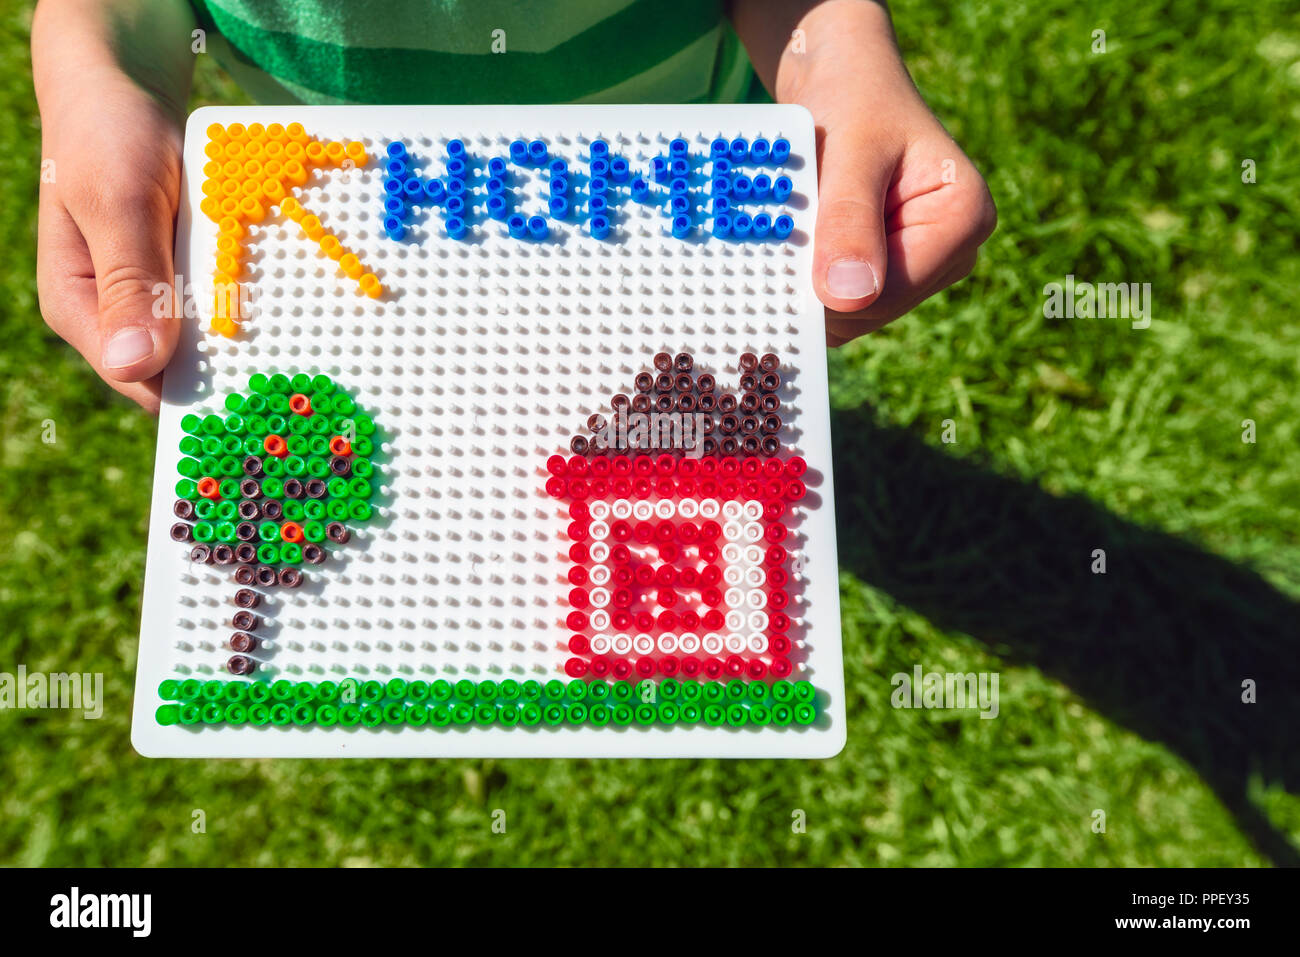 Home concept made from colorful plastic beads - Stock Image